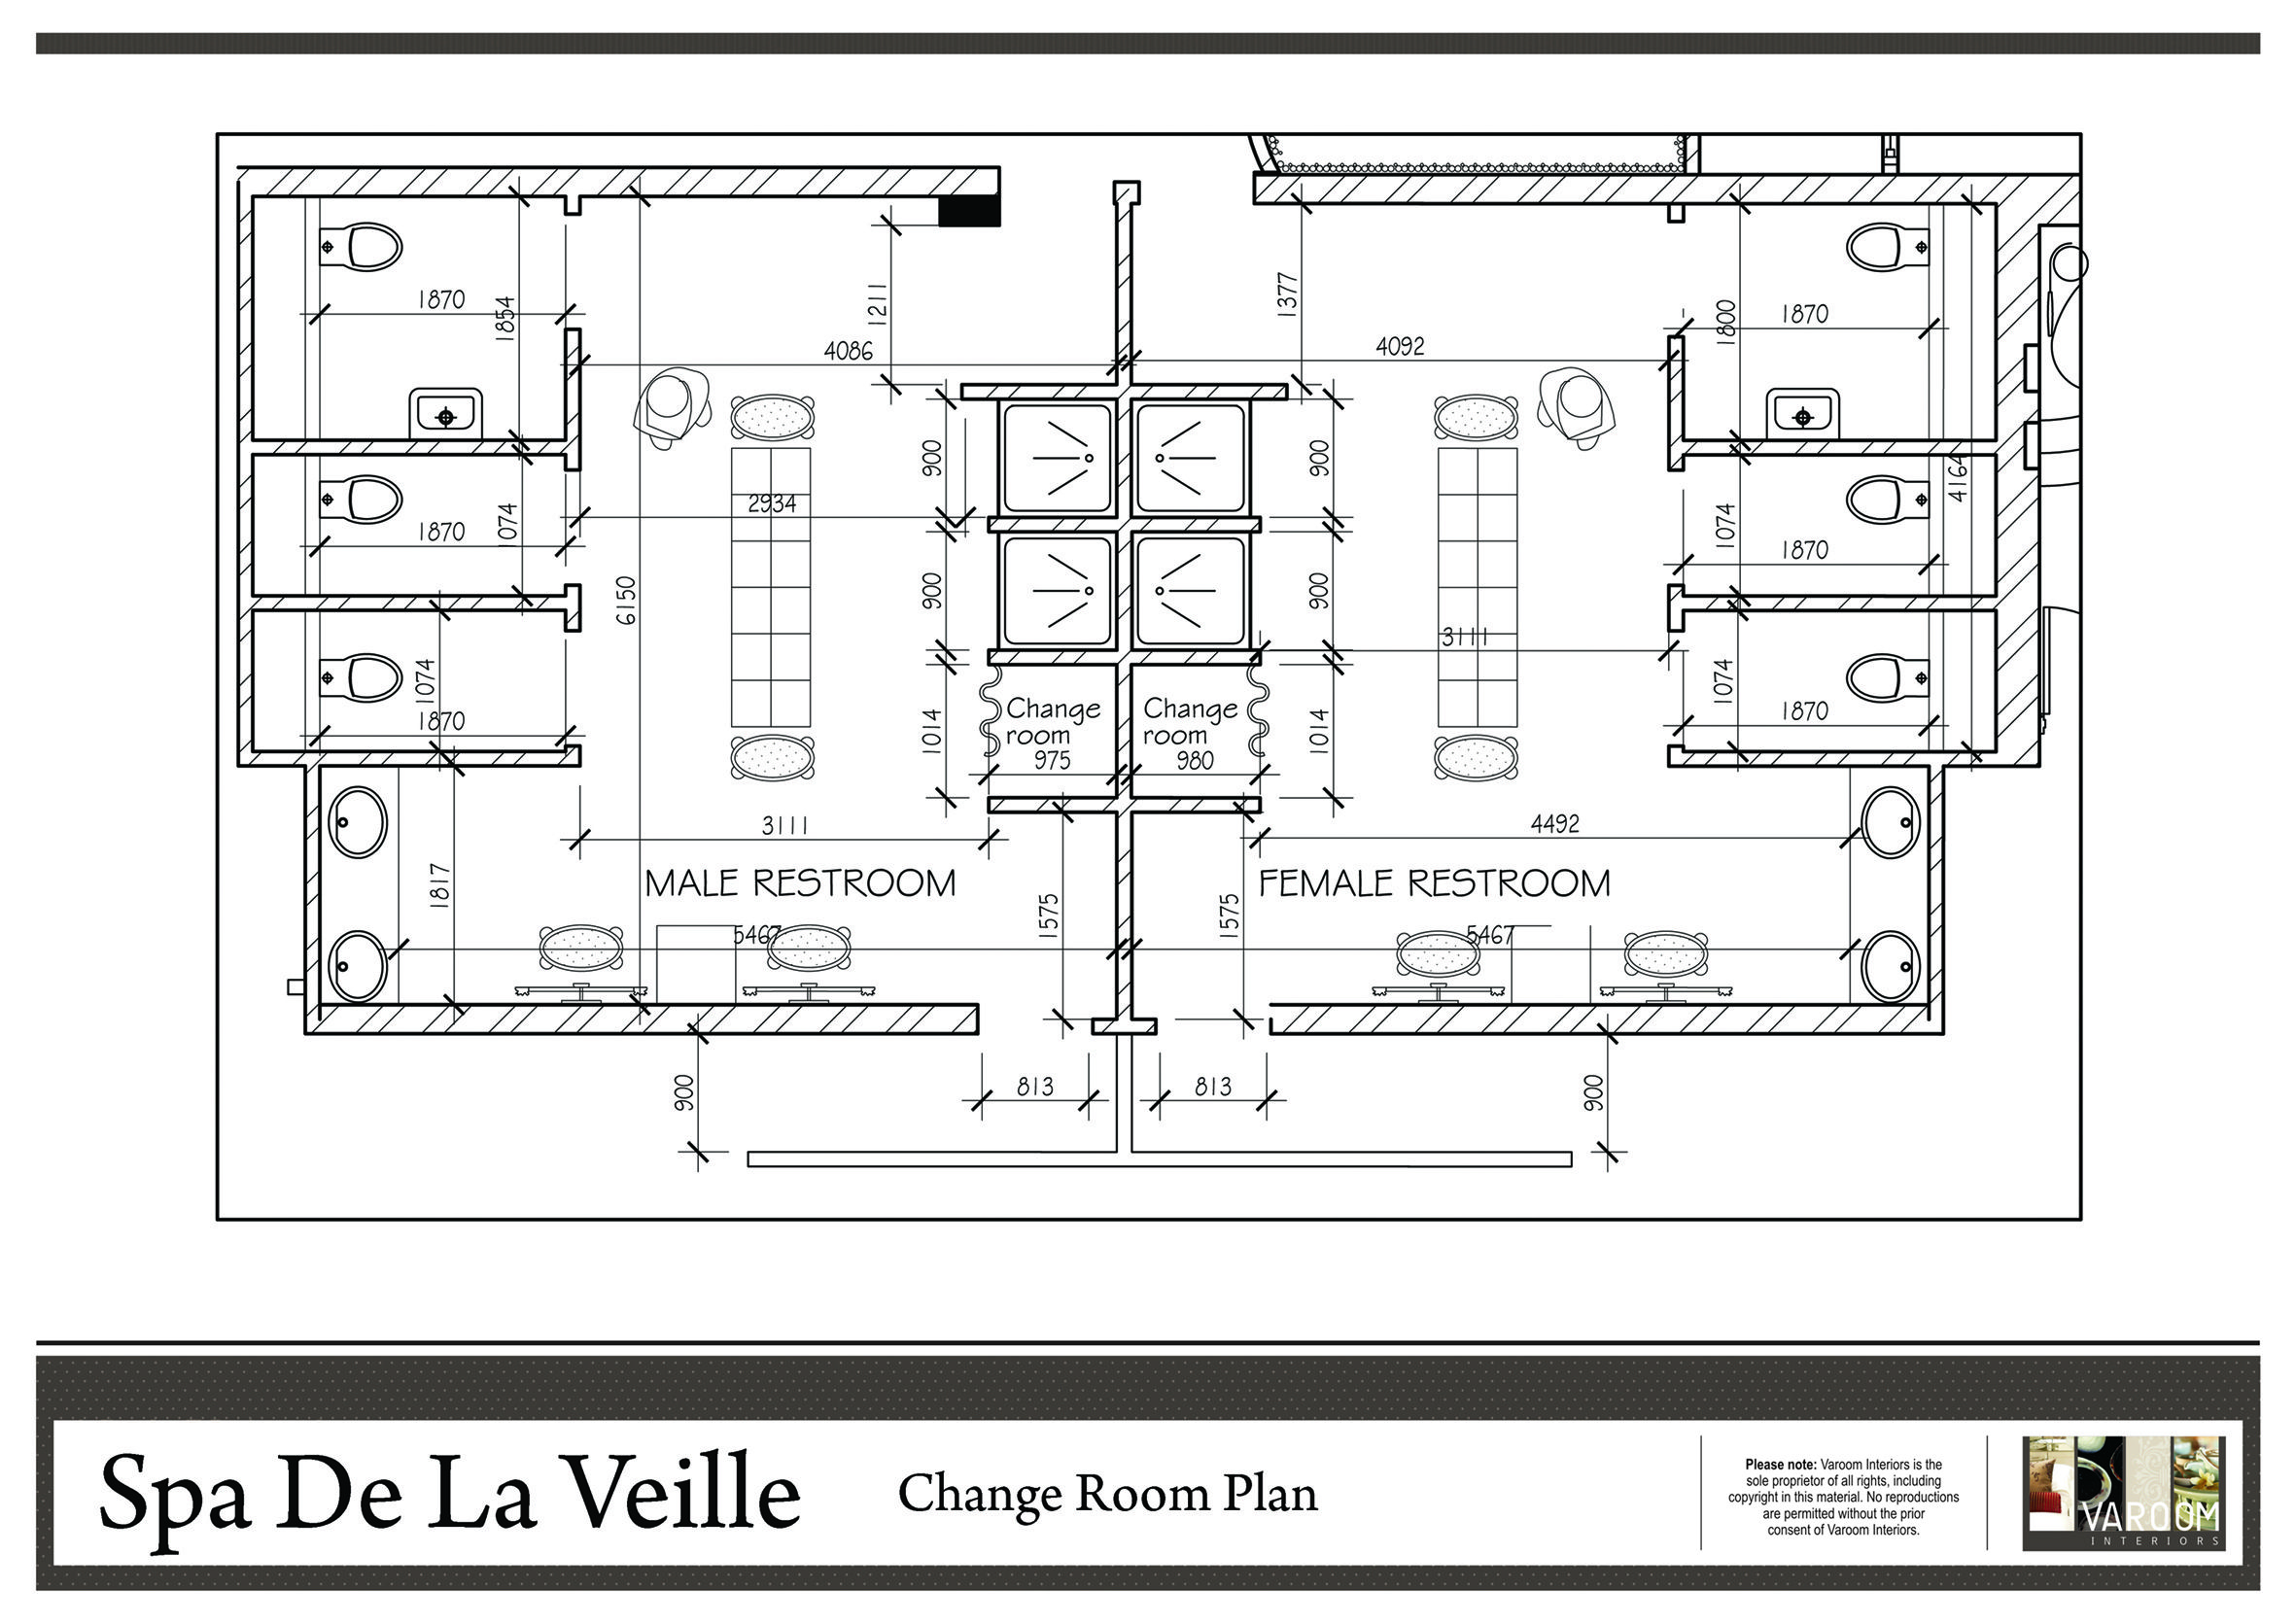 cc8d9de5a6da947fea3f5caf2f4aa1a1 Floor Plans For Locker Rooms Home Gym on gym restroom floor plan, football locker room plan, entrance floor plan, gym mirror floor plan, gym elevator floor plan, gym locker dimensions, lobby floor plan, hotel interior floor plan, restaurant floor plan, fitness gym layout floor plan, gym pool floor plan, reception floor plan, gym shower floor plan, studio floor plan, mezzanine floor plan,